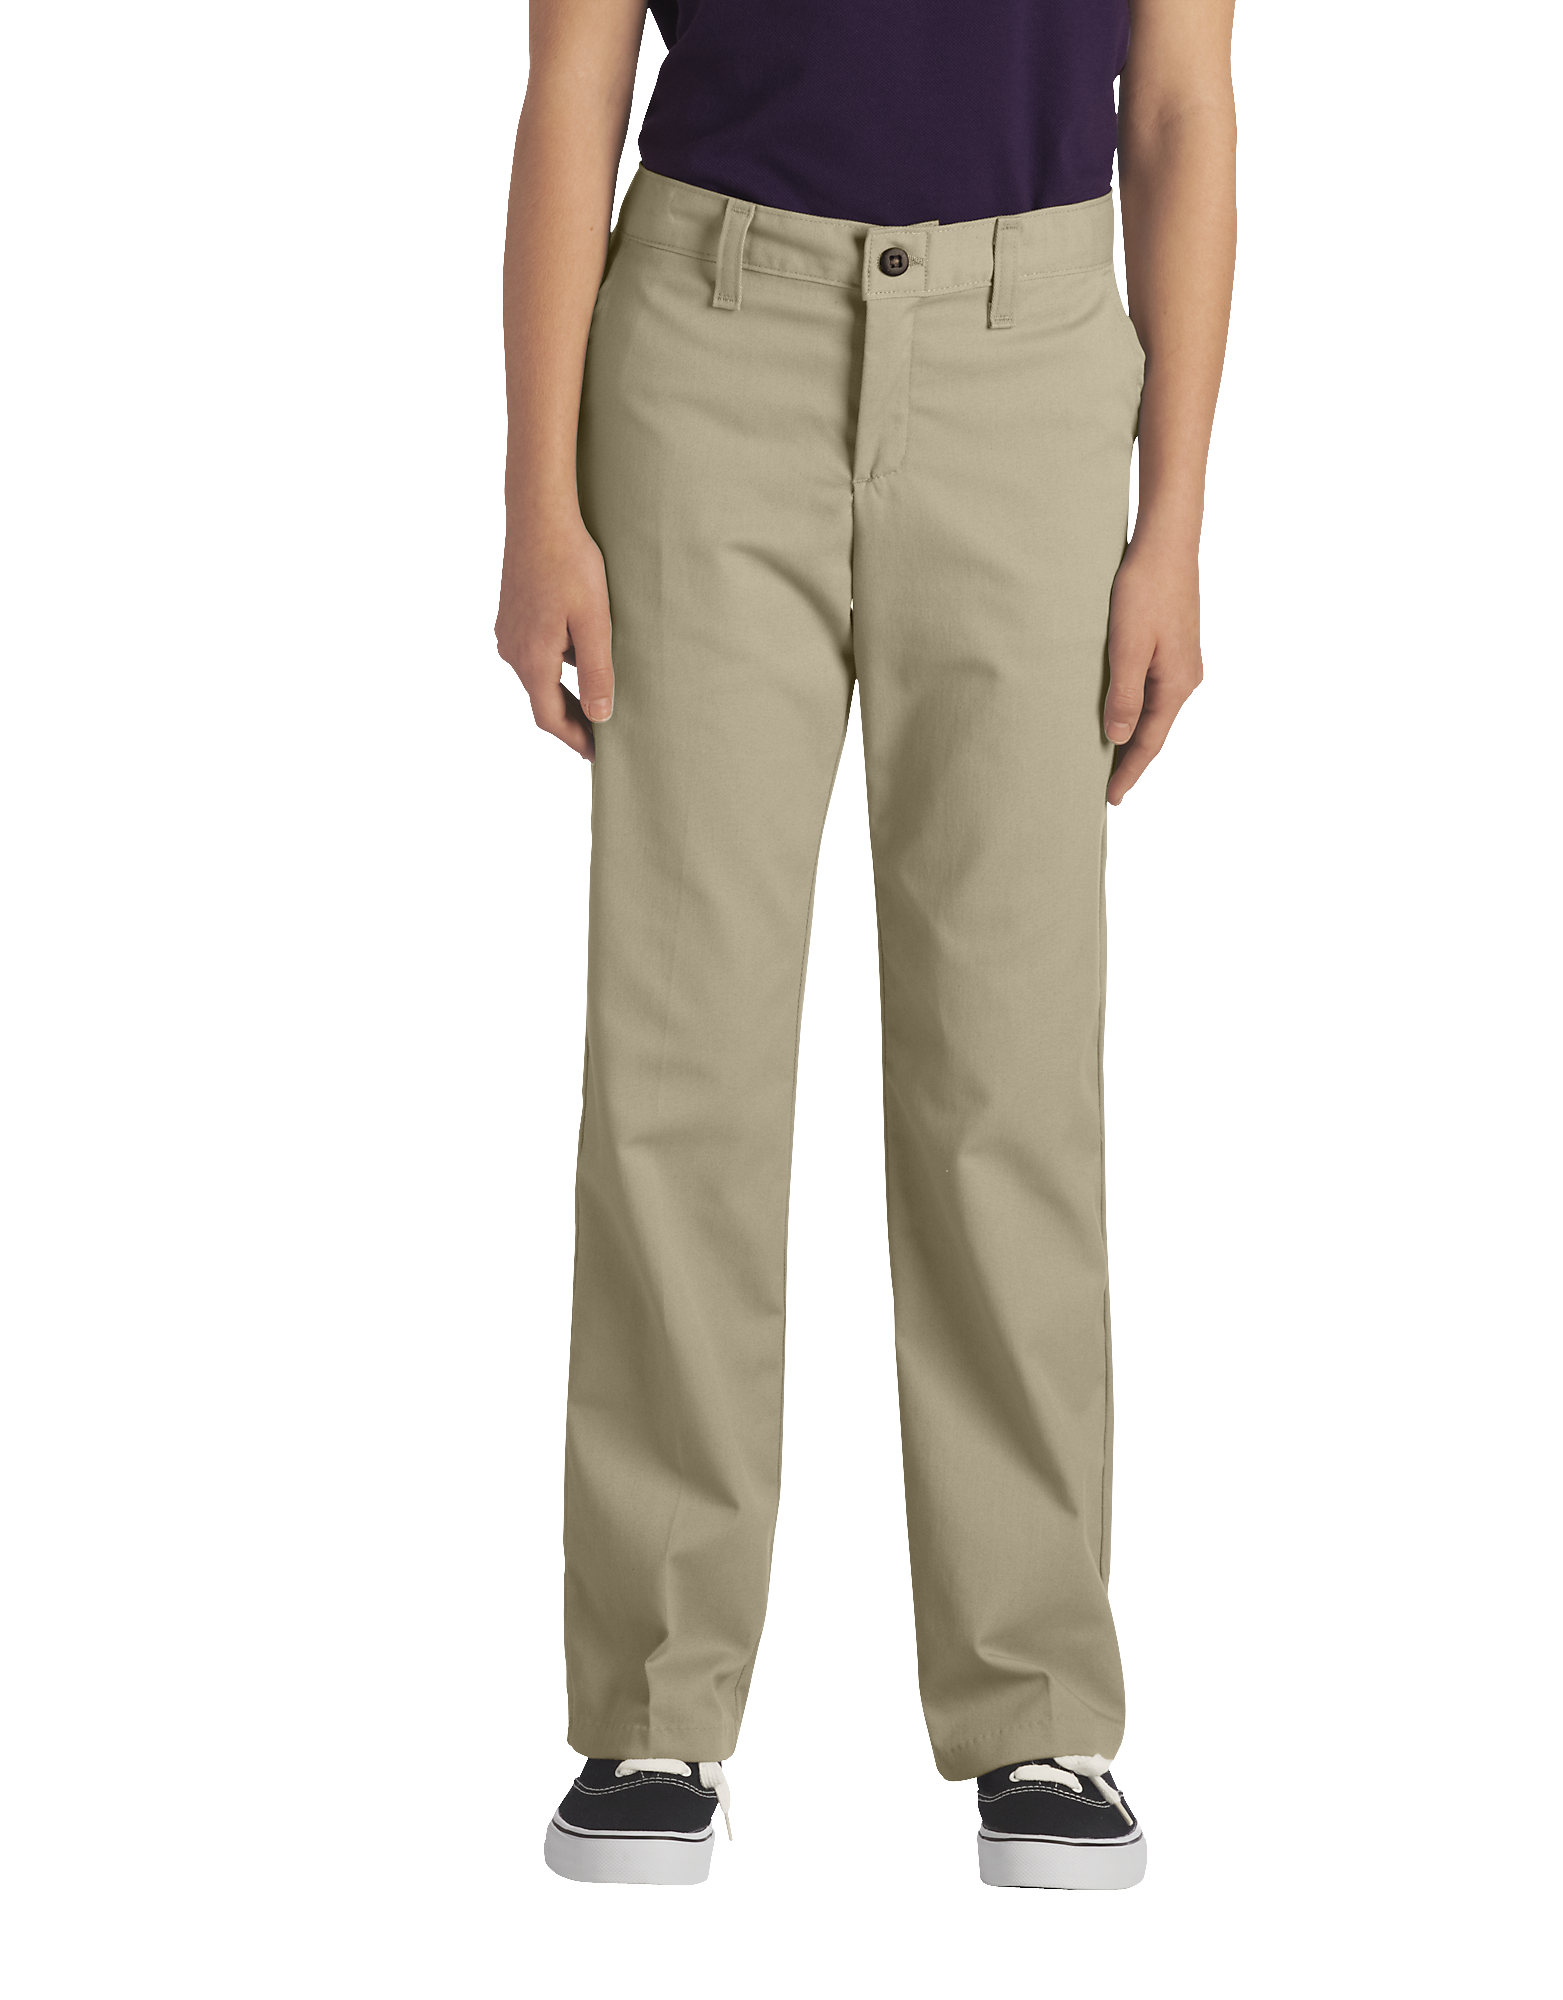 Girls' FlexWaist® Classic Fit Straight Leg Stretch Twill Pants, Plus, 10.5-20.5 - Desert Khaki (DS)